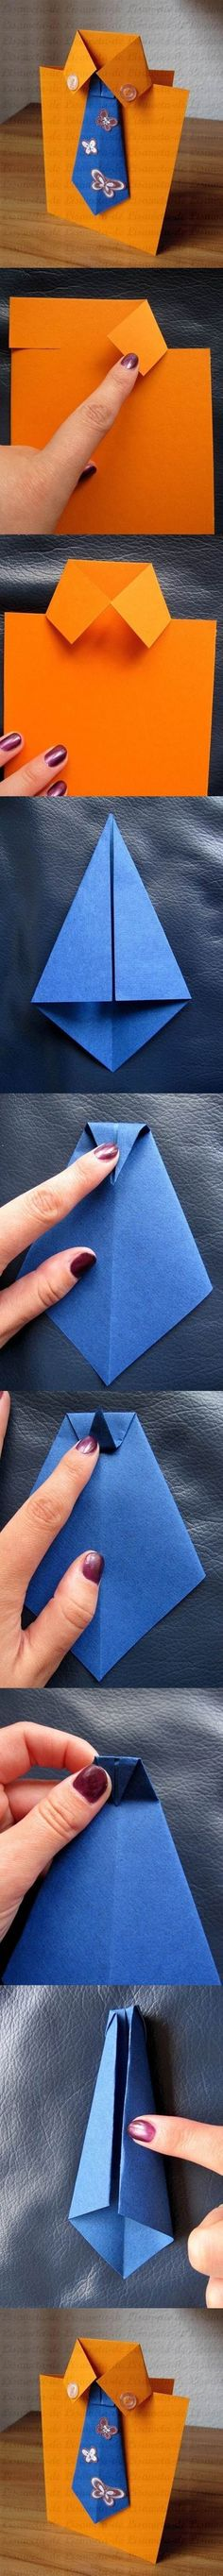 How To Make A Paper Shirt And Tie Card